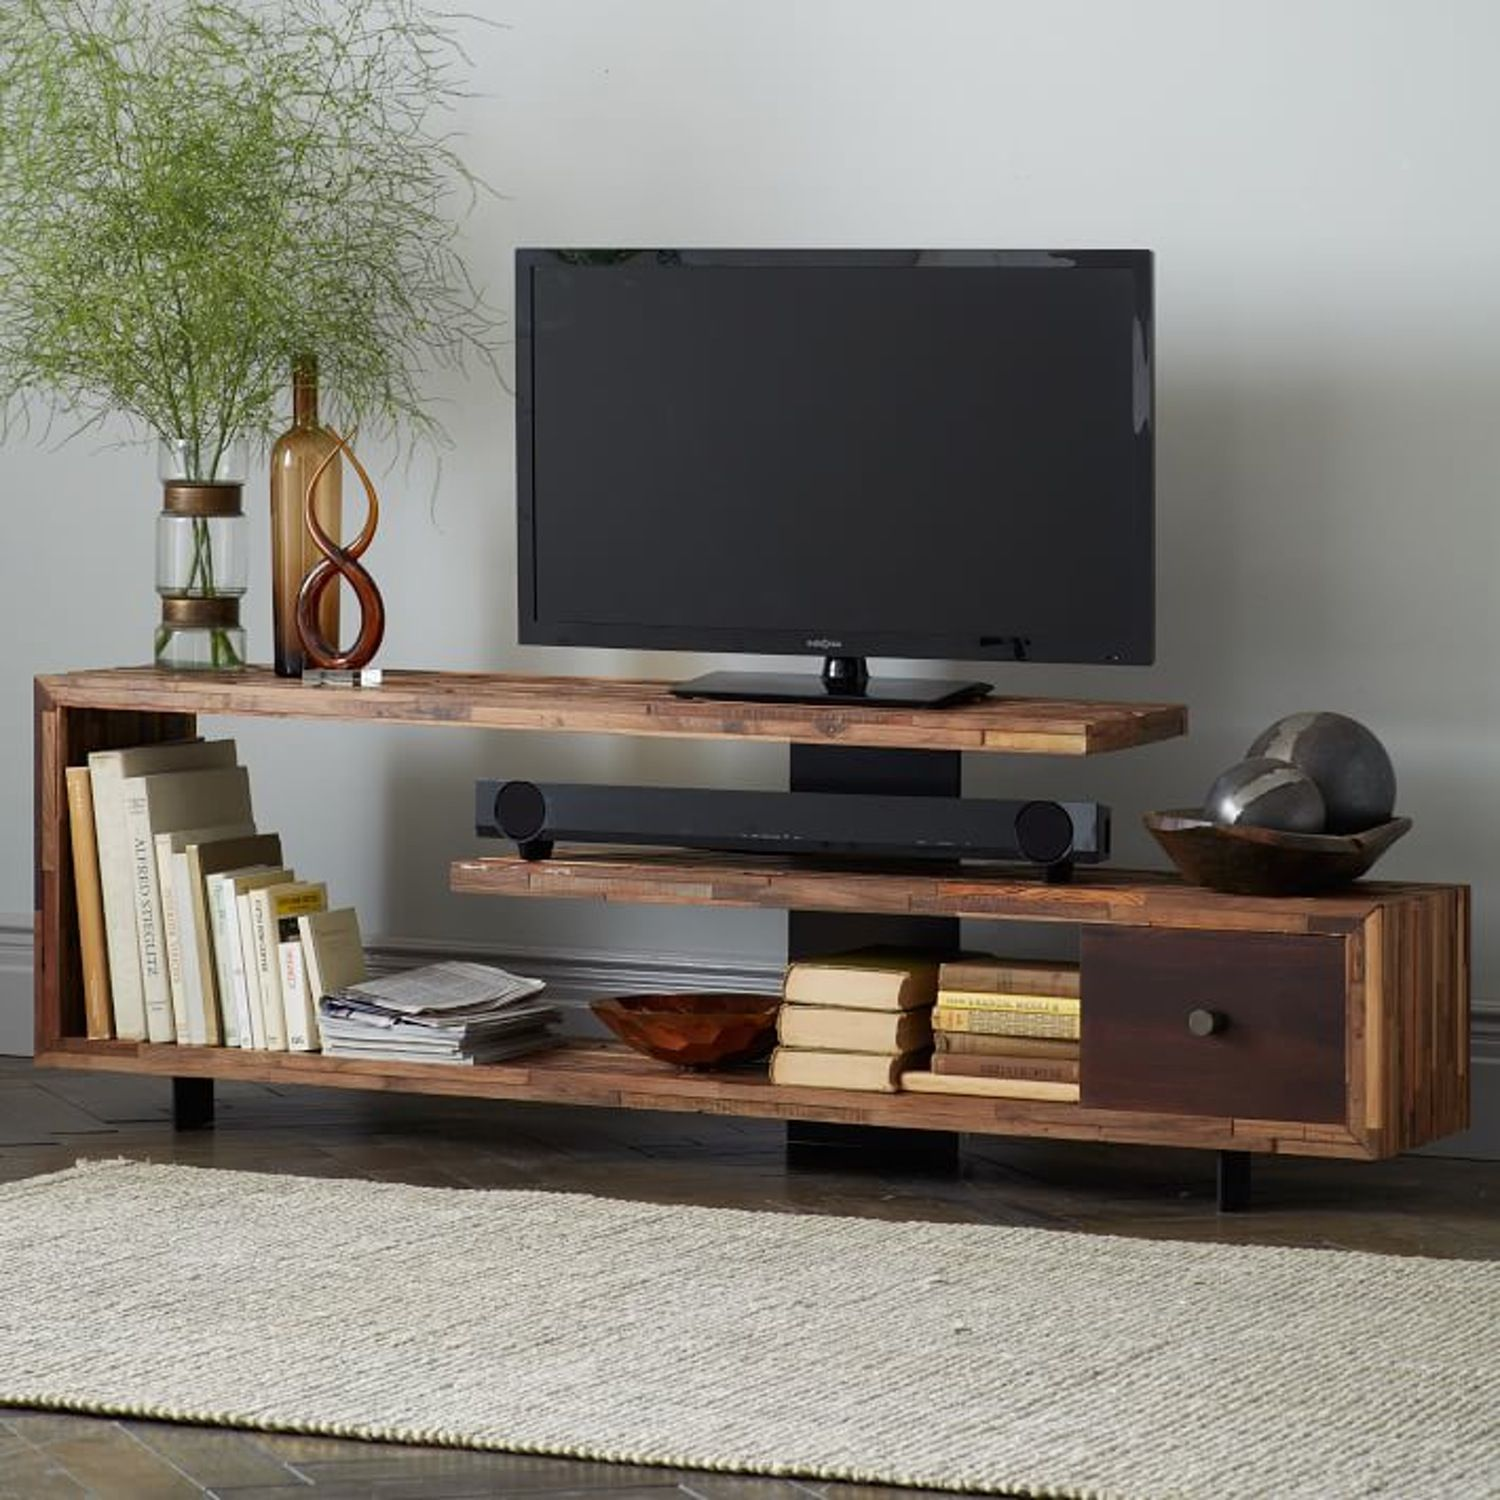 11 of the Best Media Consoles & TV Stands | Tv stand wood